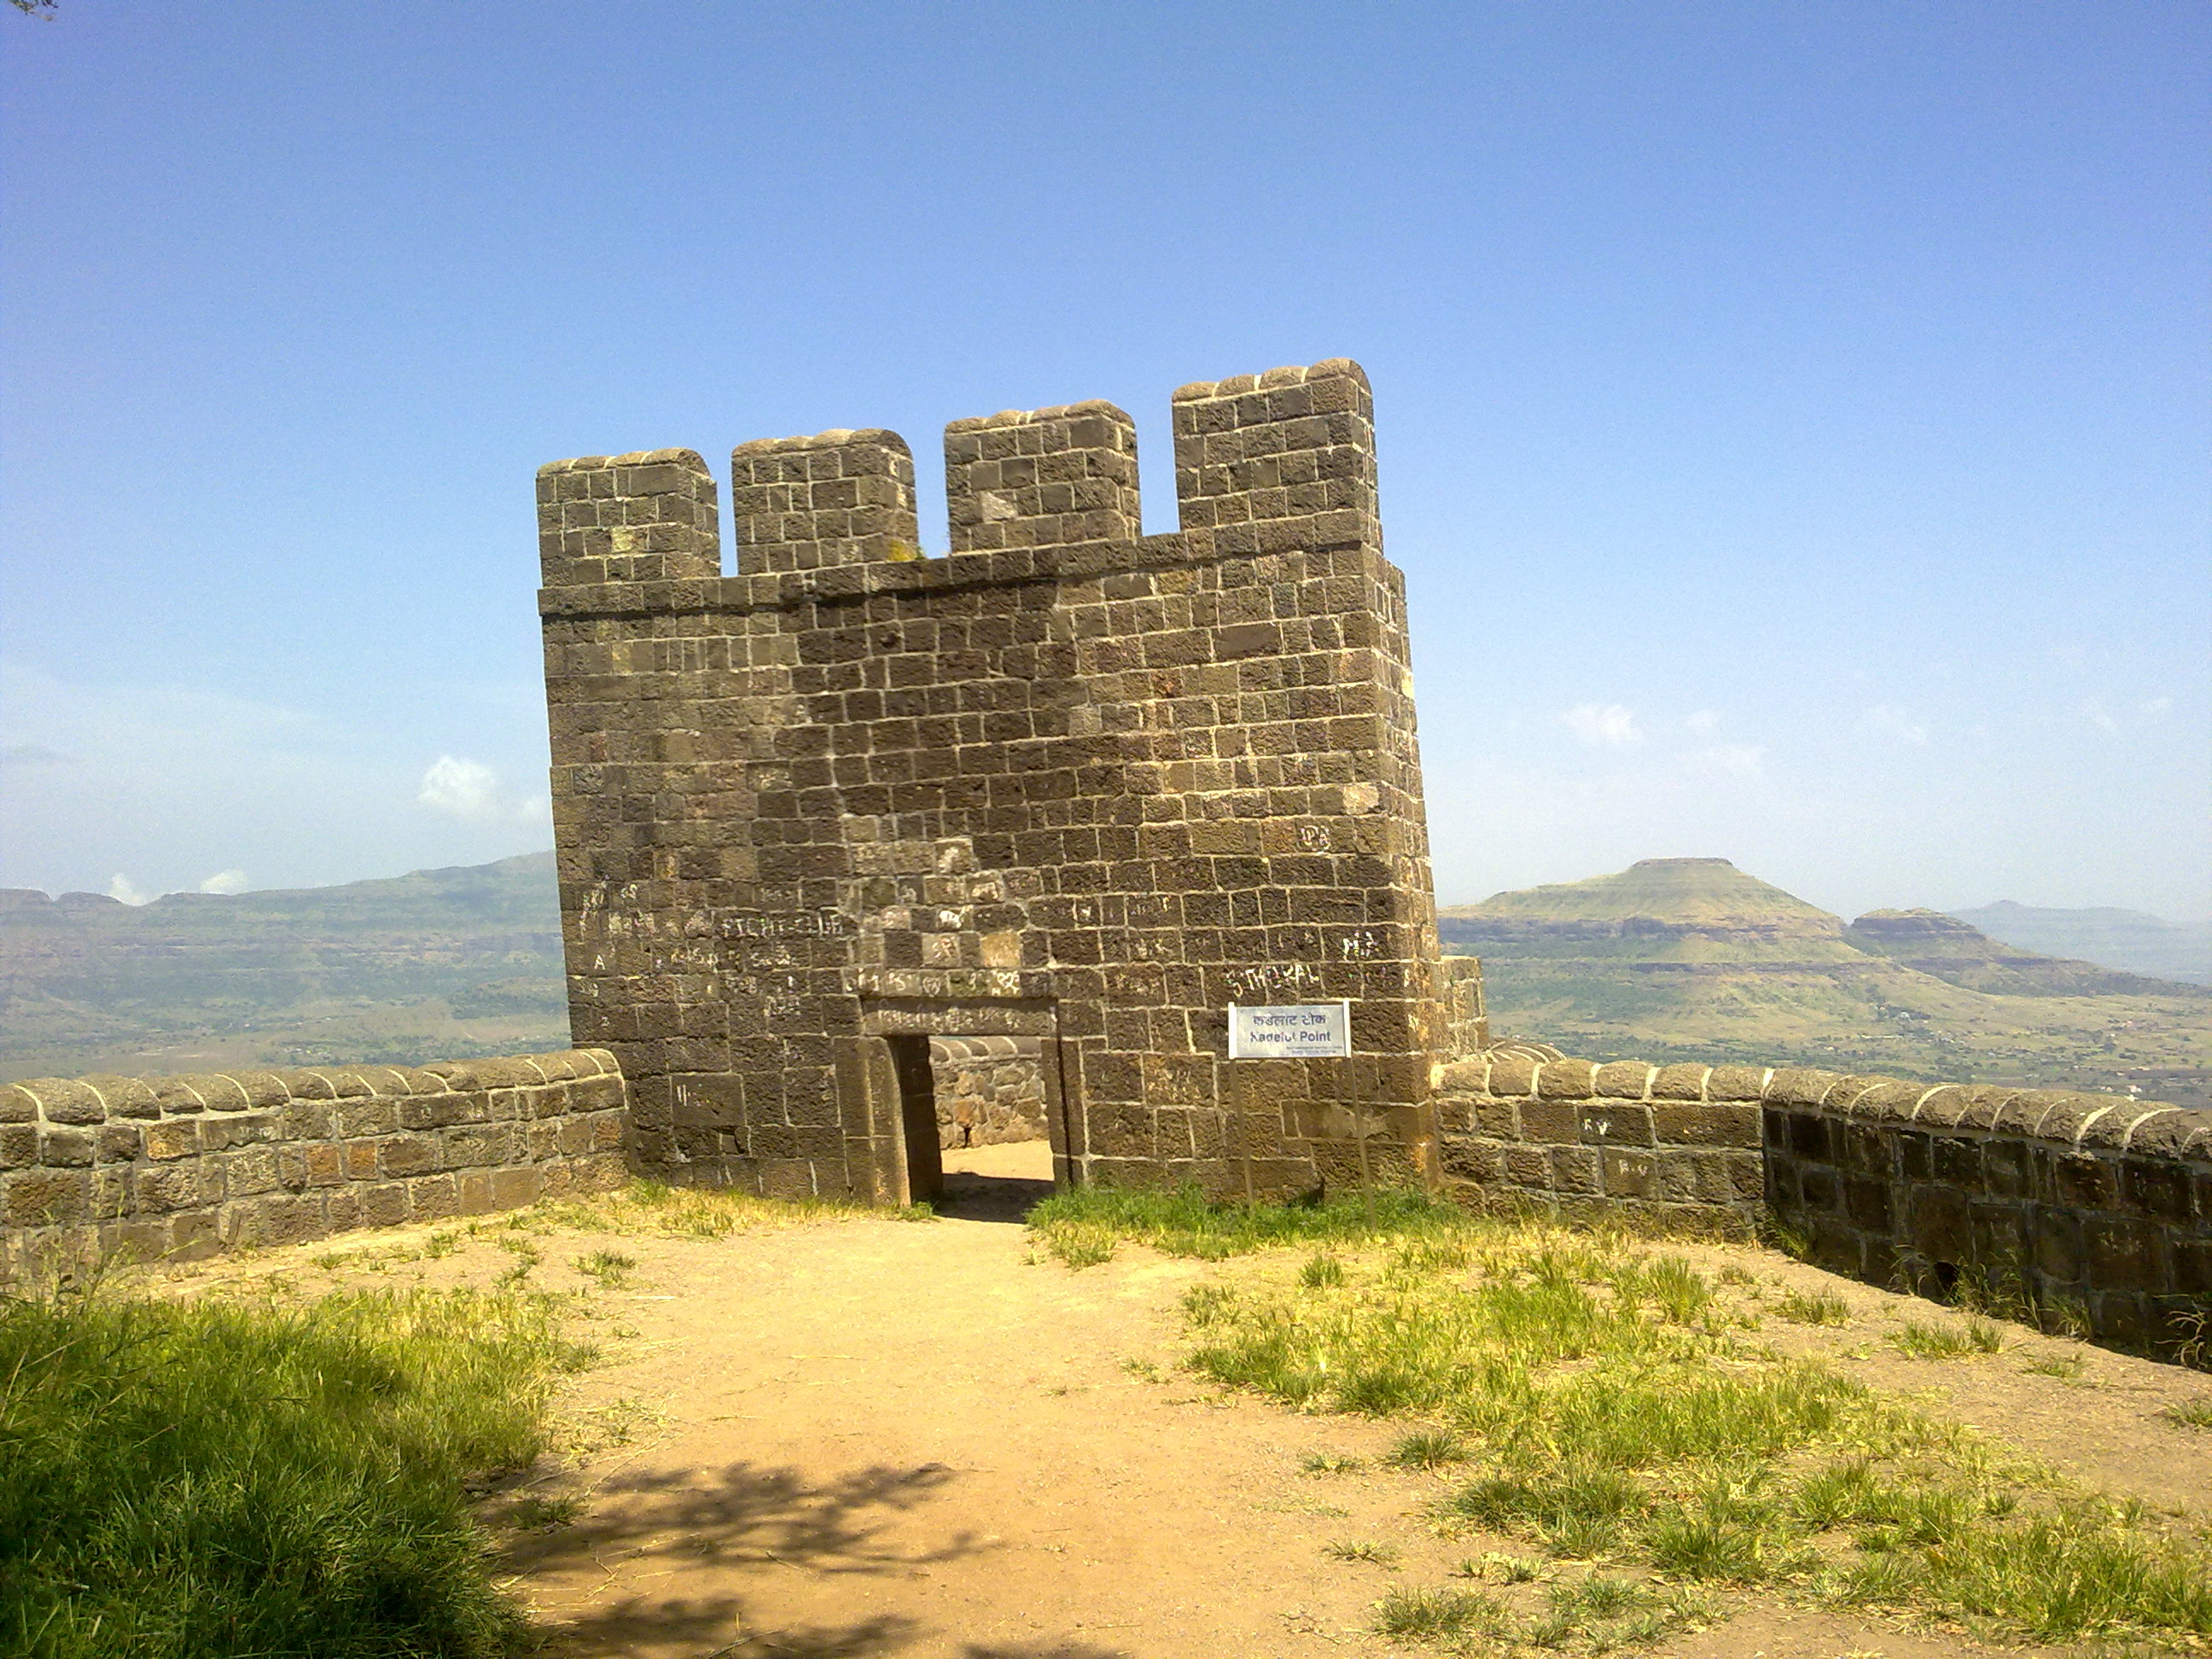 Shivneri Killa http://en.wikipedia.org/wiki/File:Trupti_Sarode_2_Kadelot_point_at_Shivneri_fort.jpg